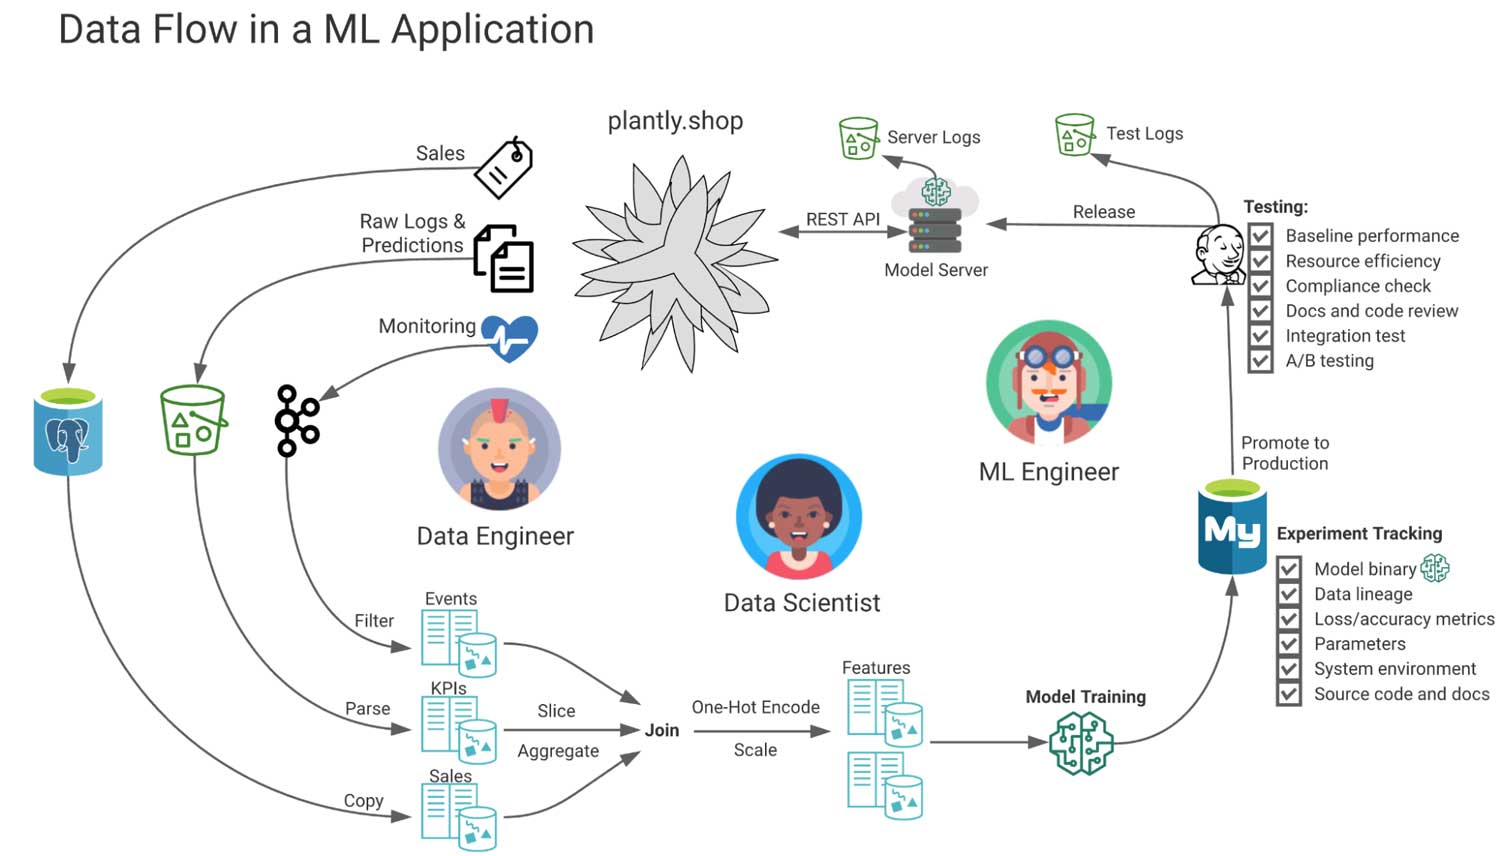 Flow of data flow for an ML application project built on Databricks Lakehouse.